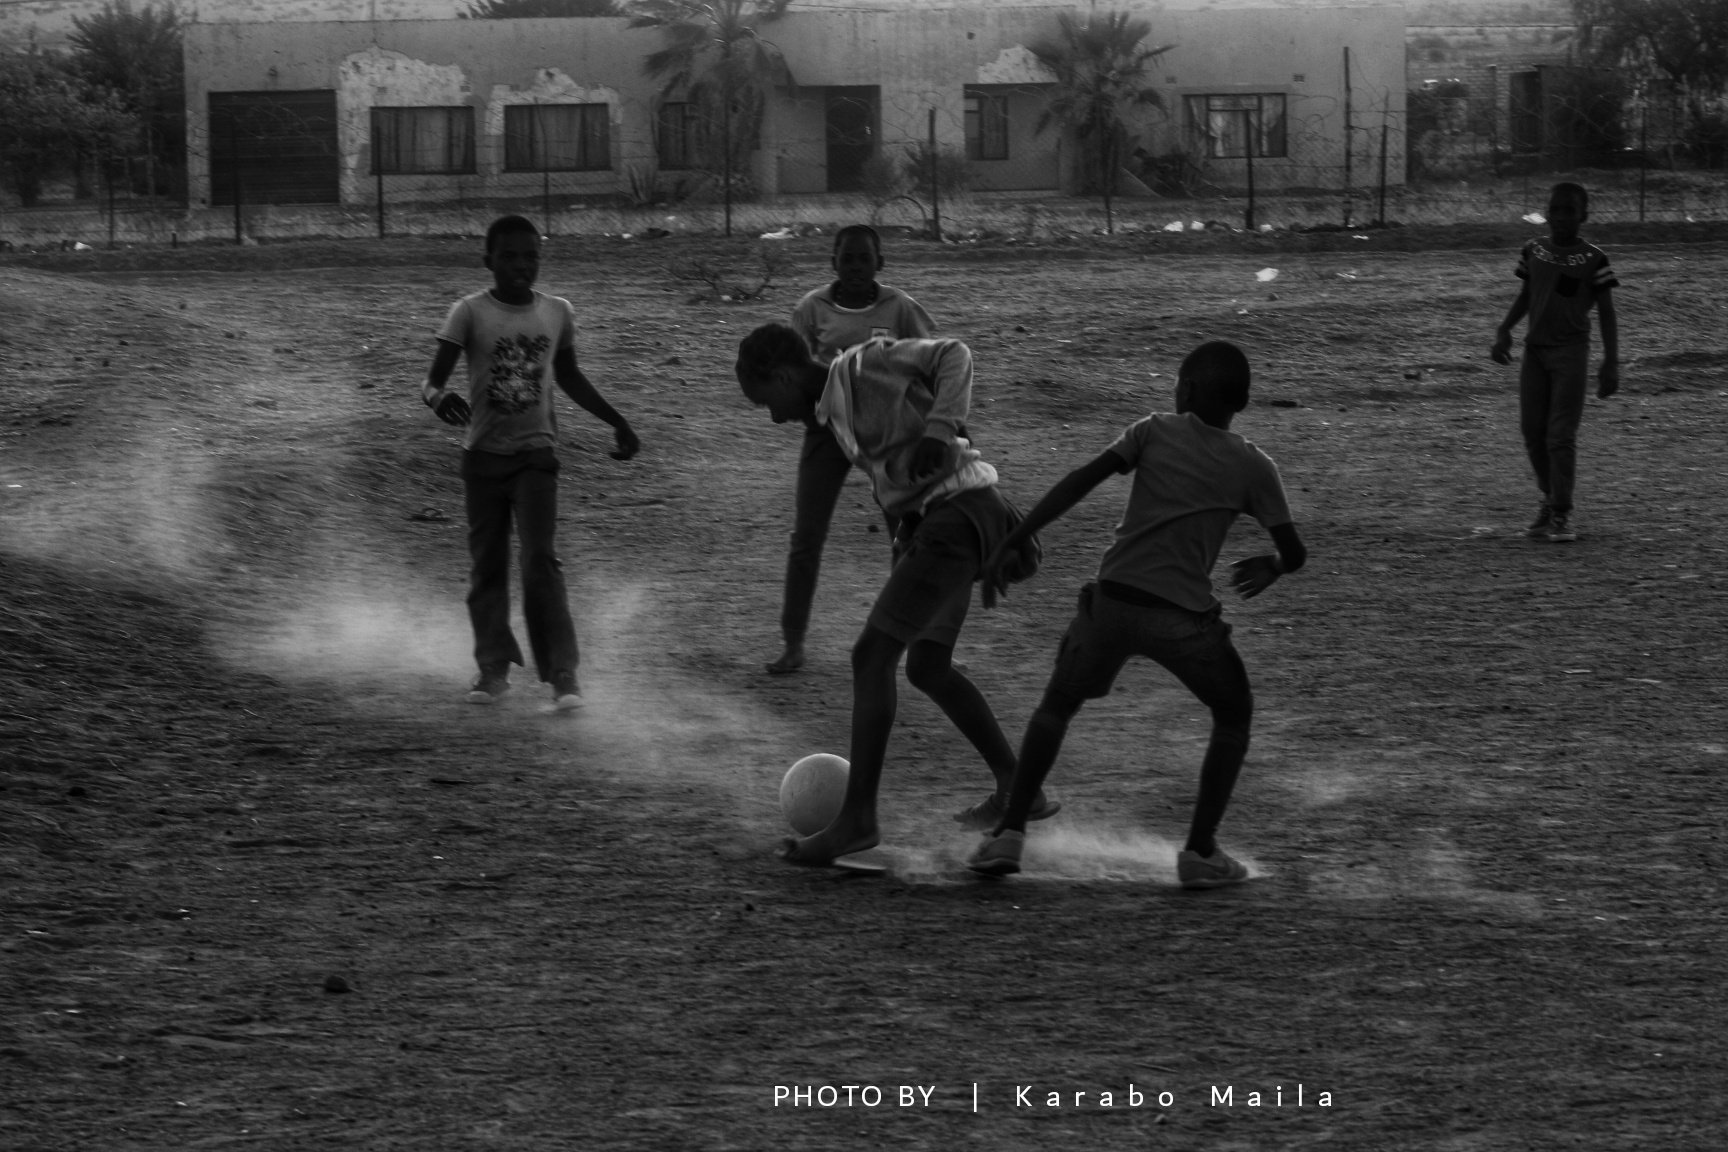 Children playing soccer in a township taken by Karabo Maila